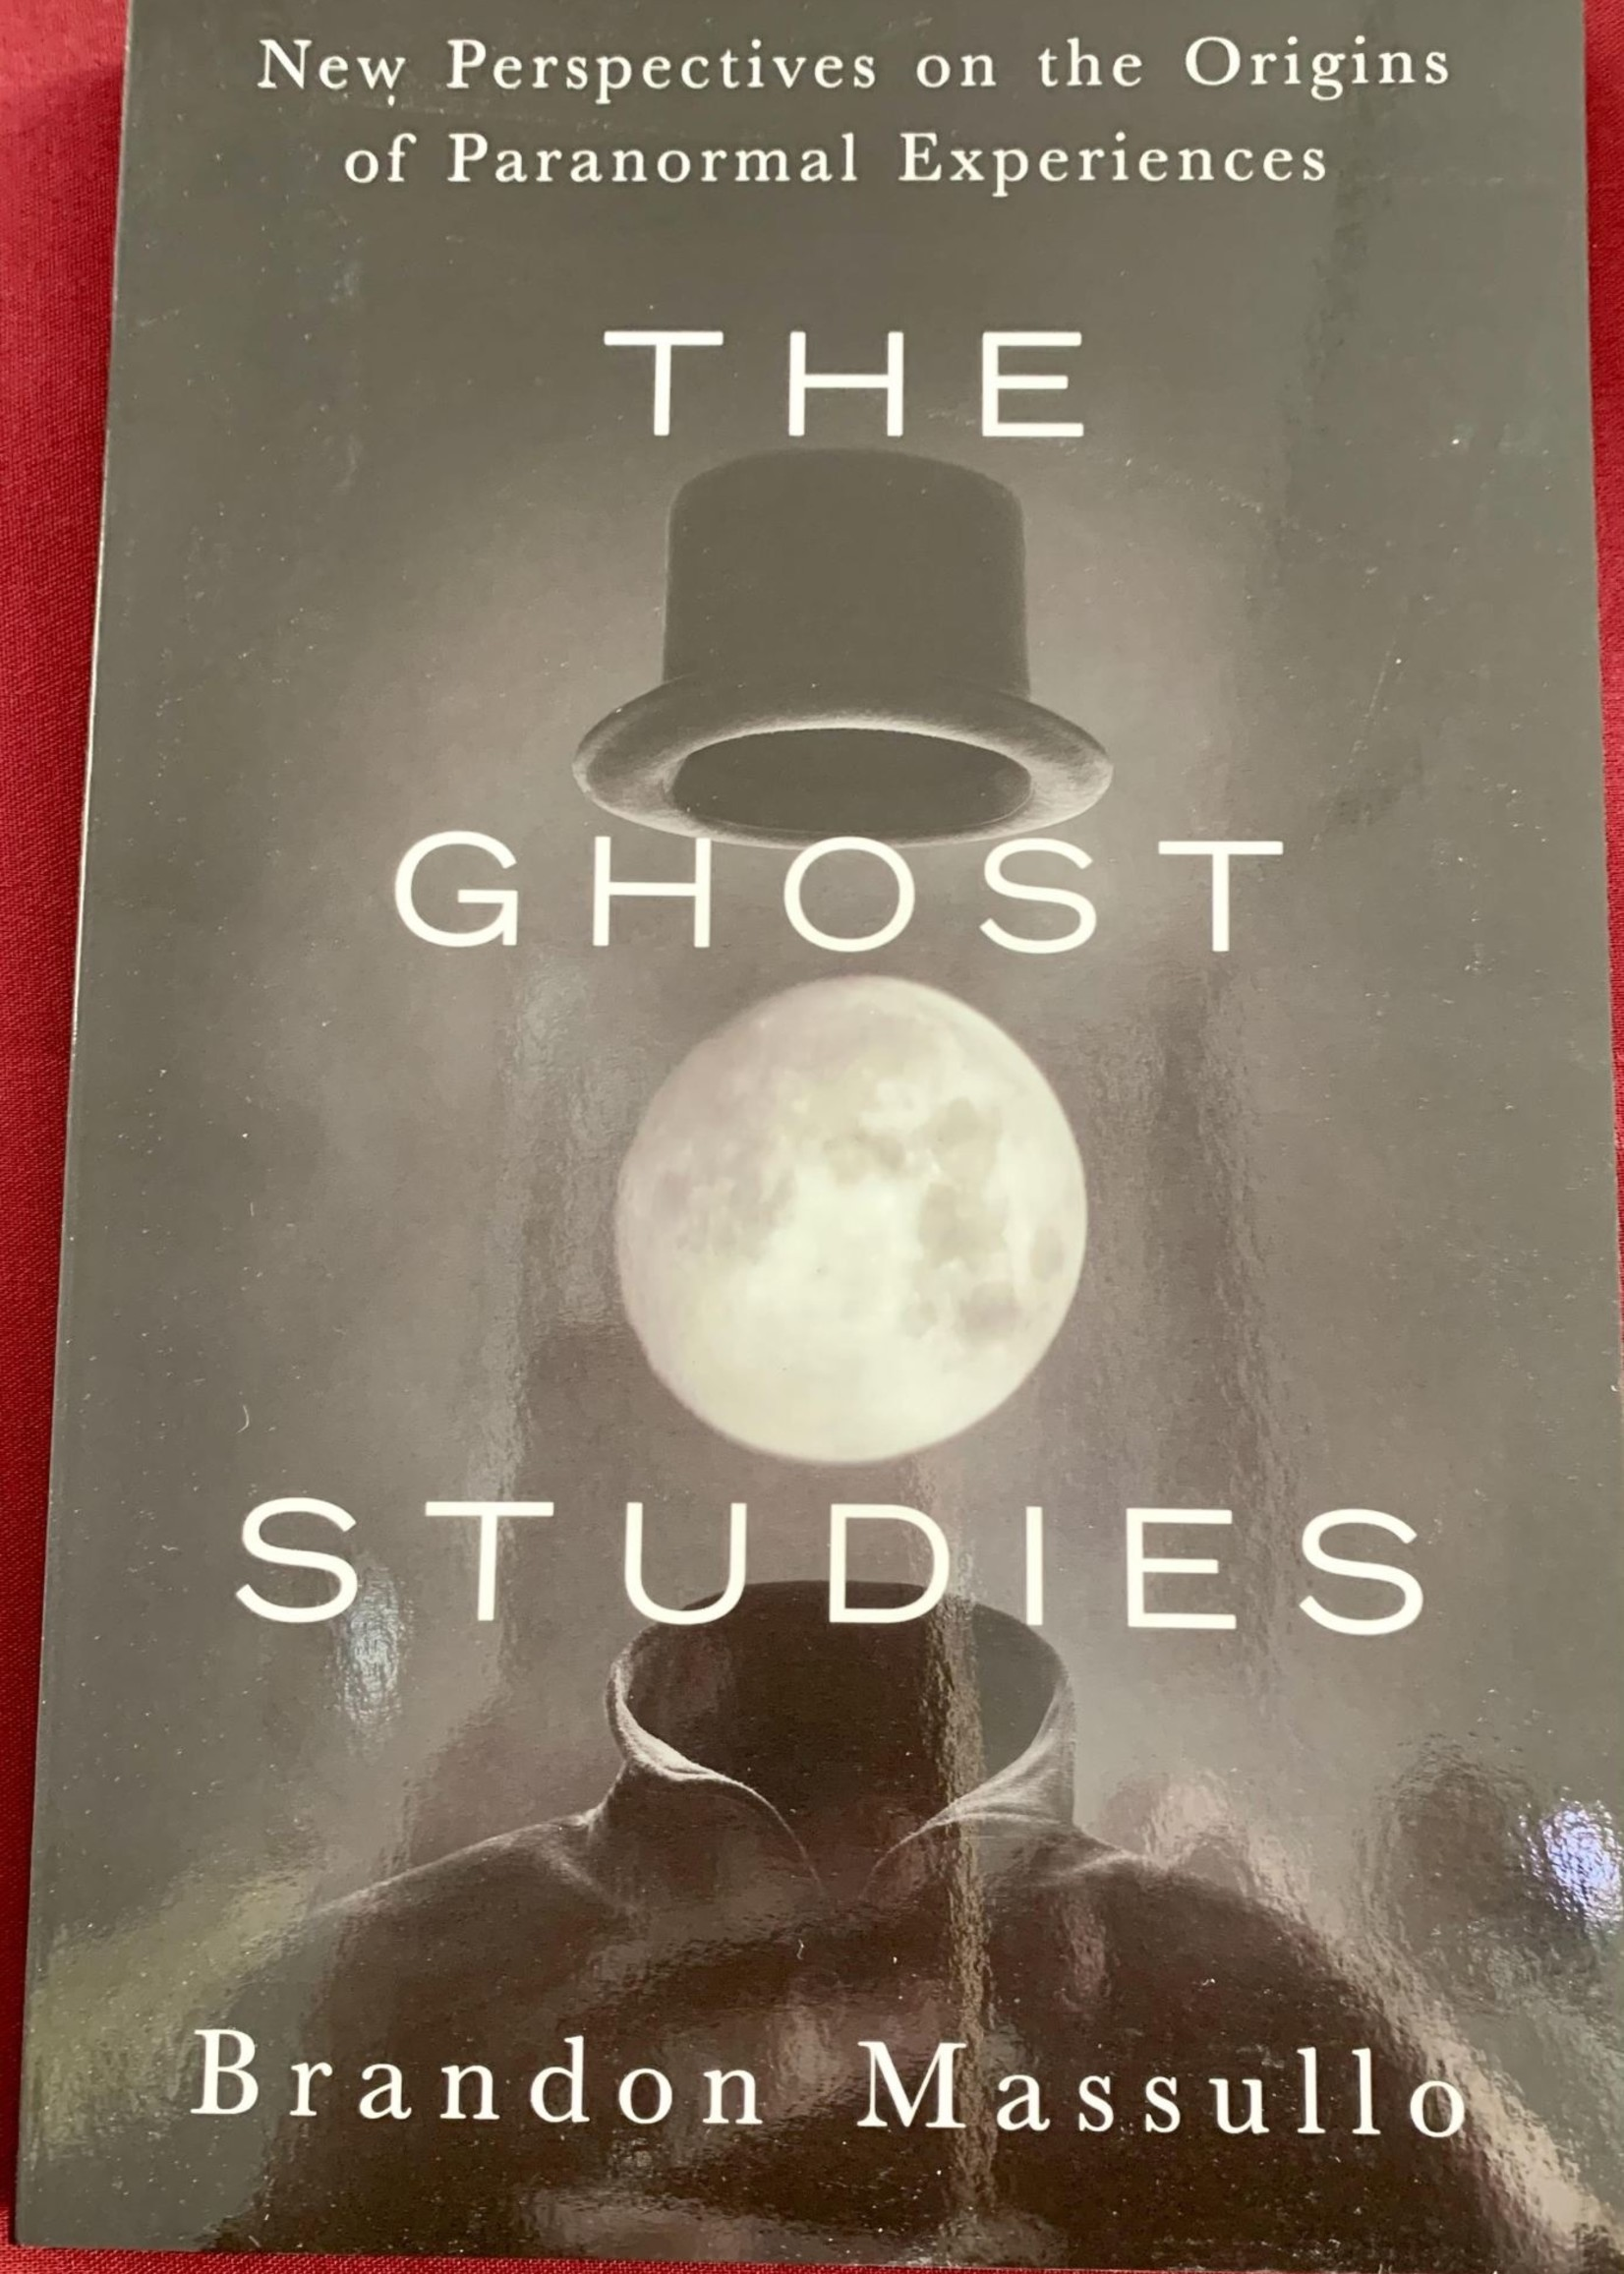 The Ghost Studies New Perspectives on the Origins of Paranormal Experiences - Brandon Massullo